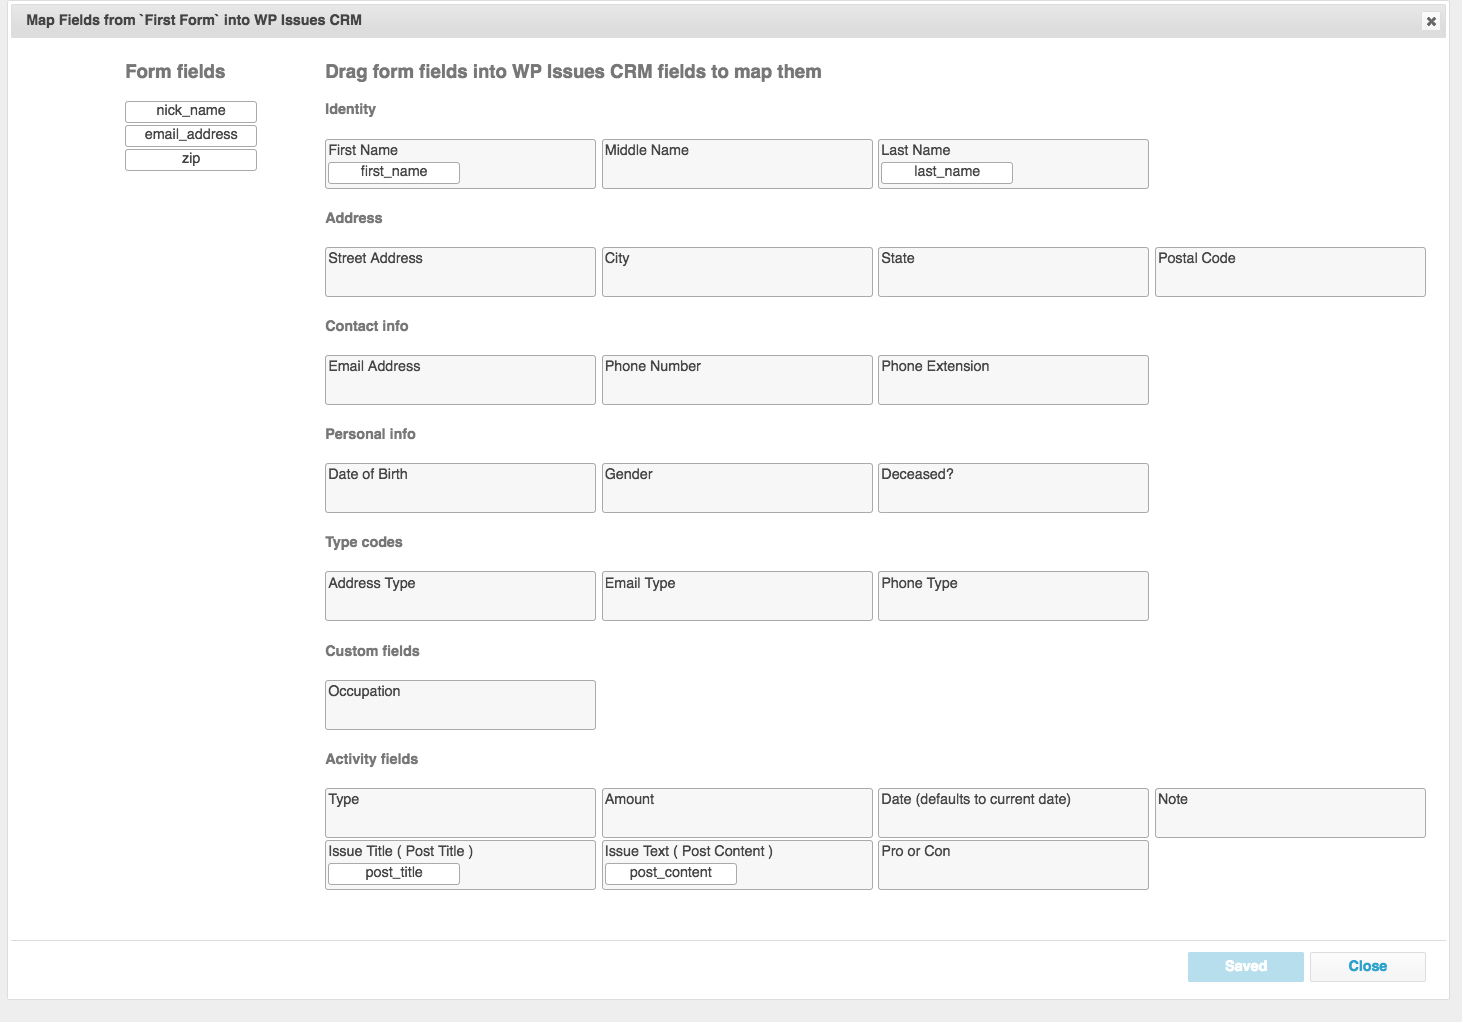 Mapping form fields into the WP Issues CRM database is easy with the clean graphical map interface.